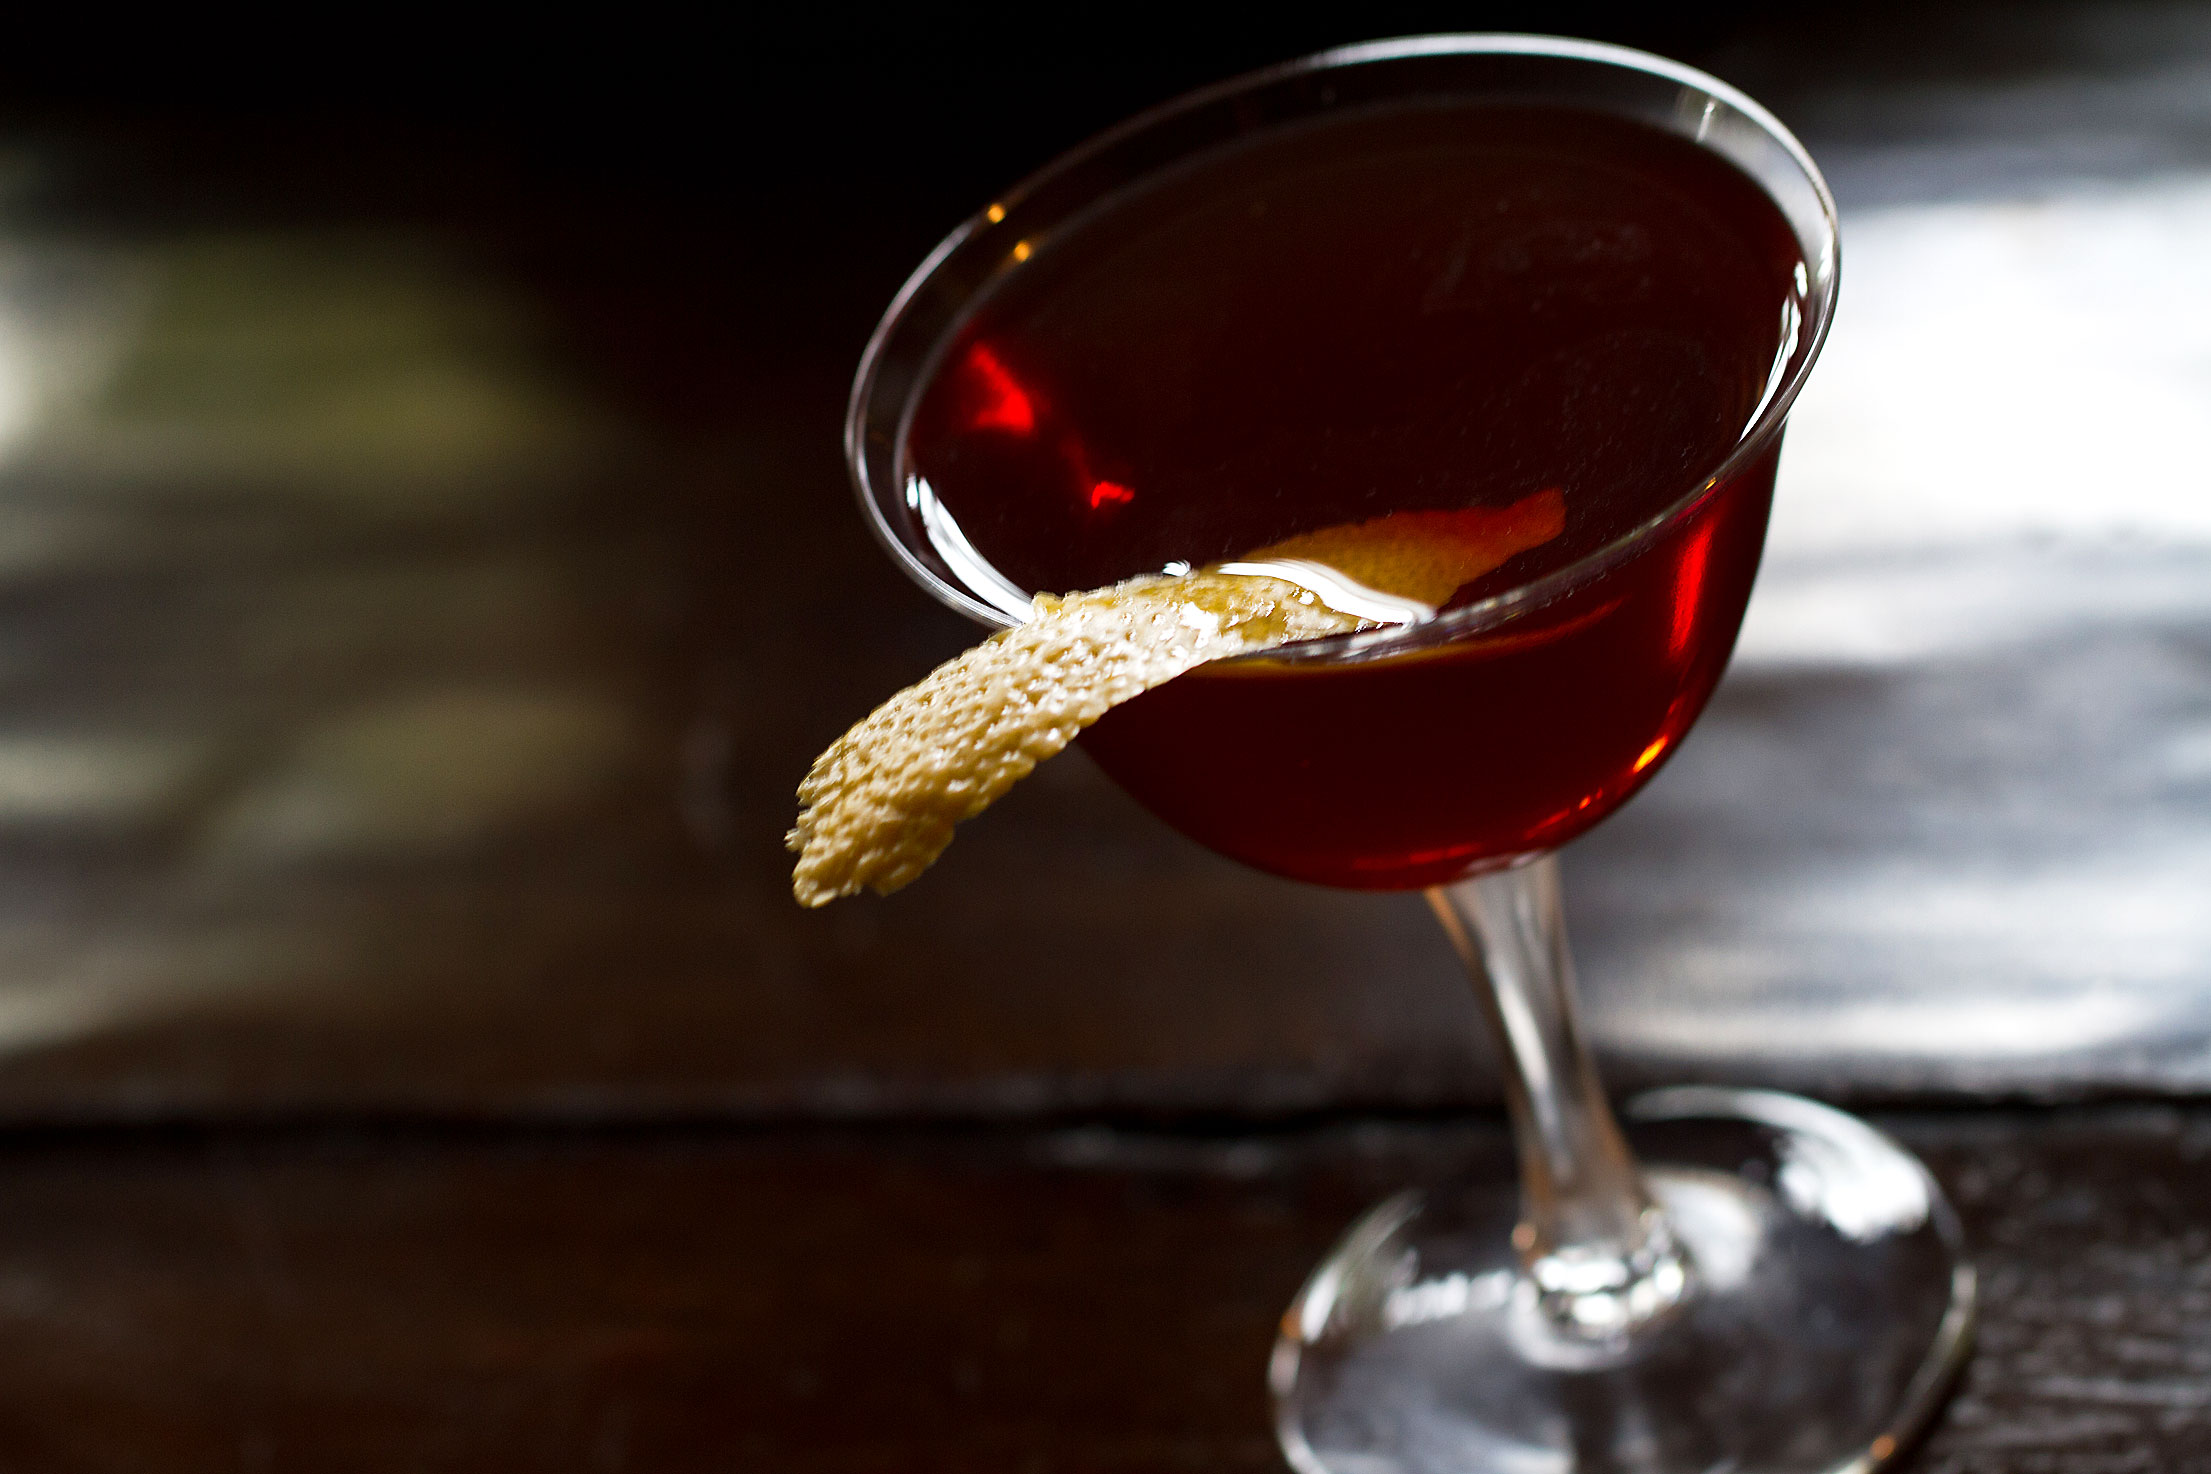 Vichy Cycle, a Calvados, Kummel, and Vermouth Cocktail